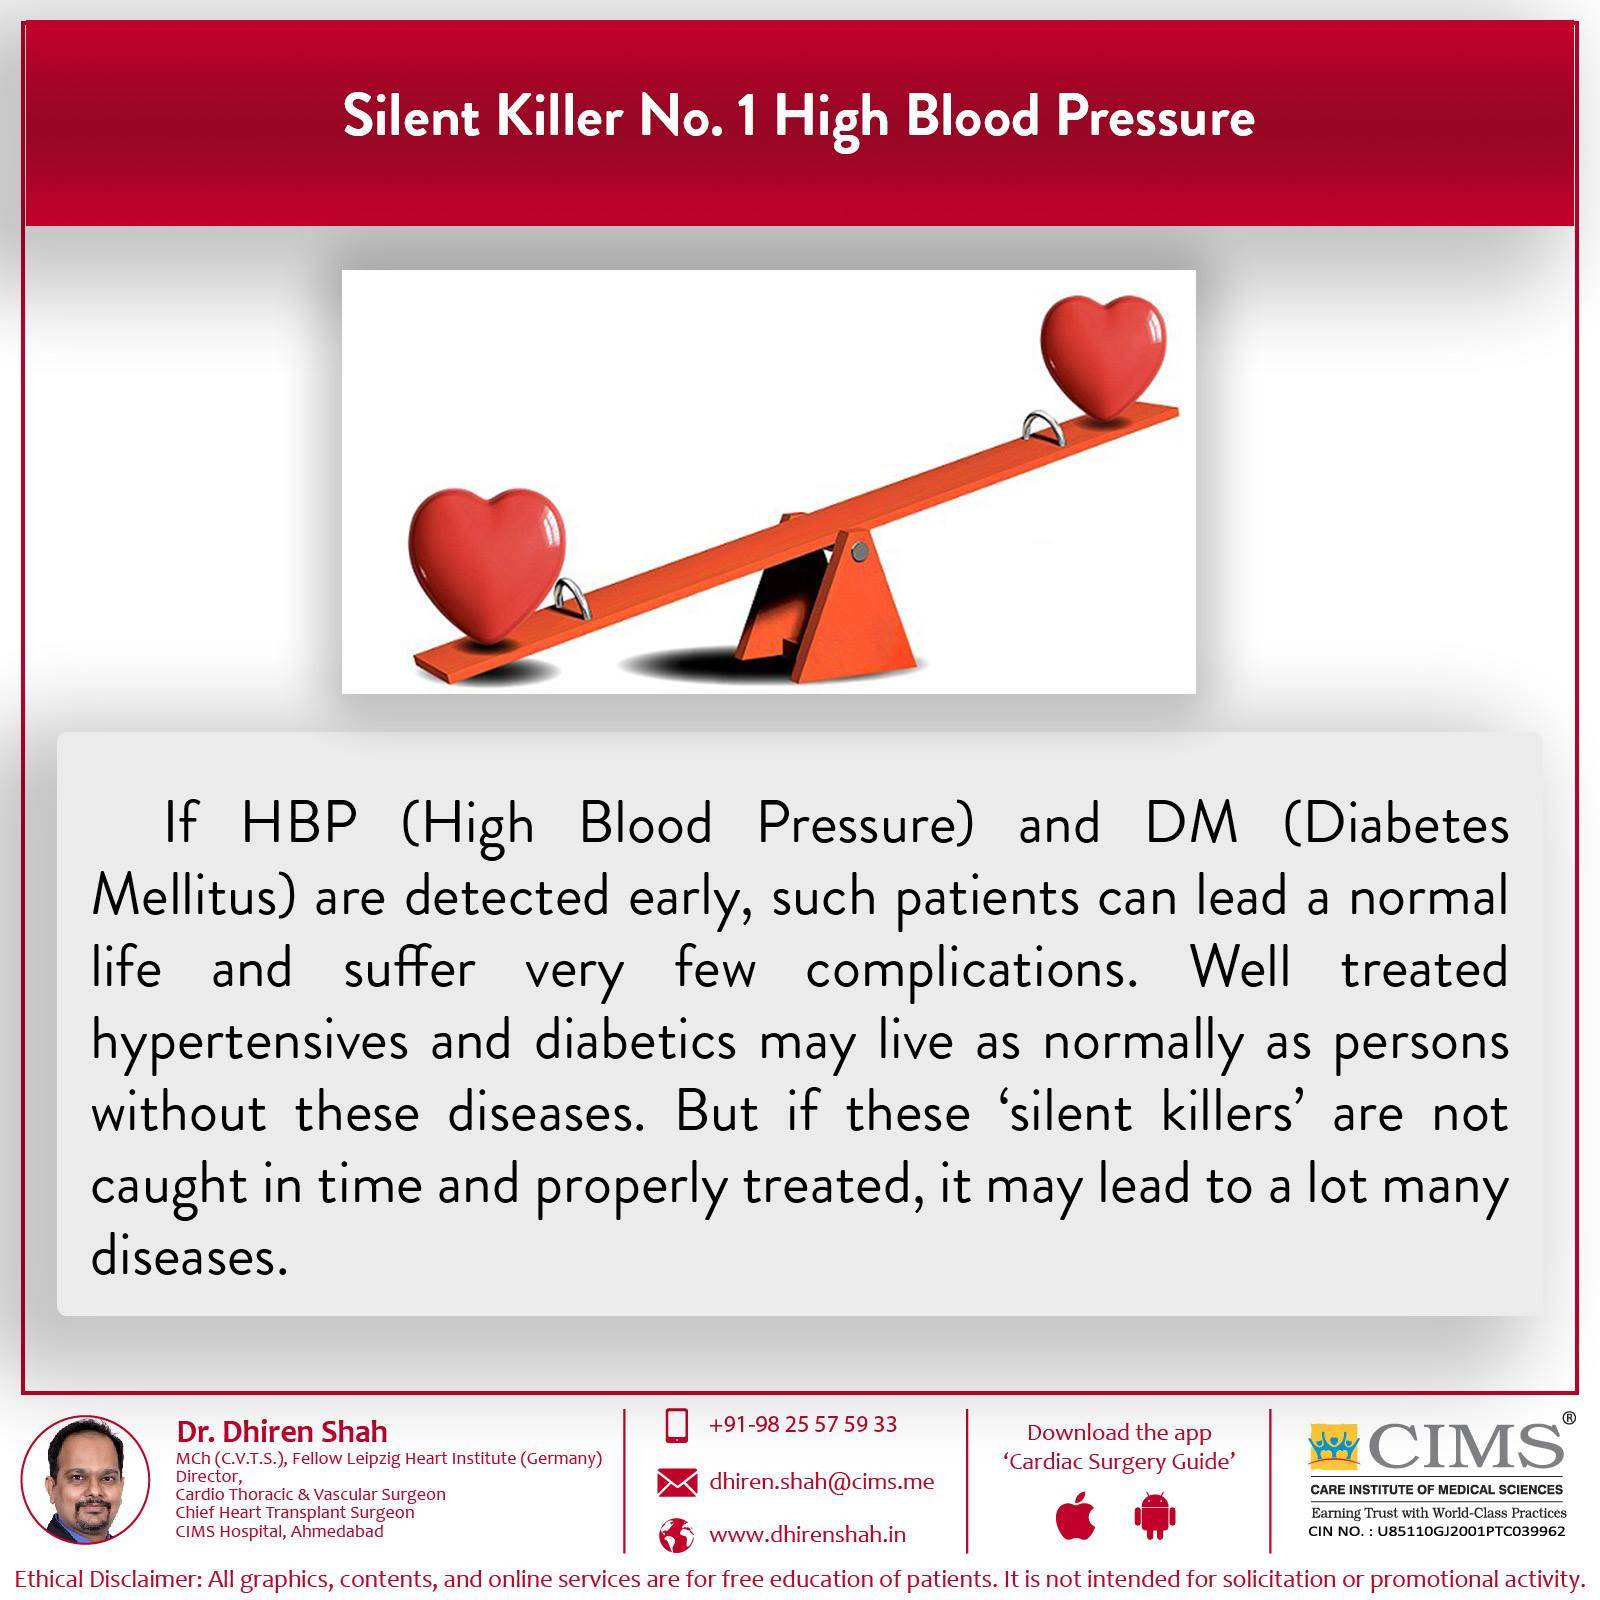 Silent killer No.1 high blood pressure.